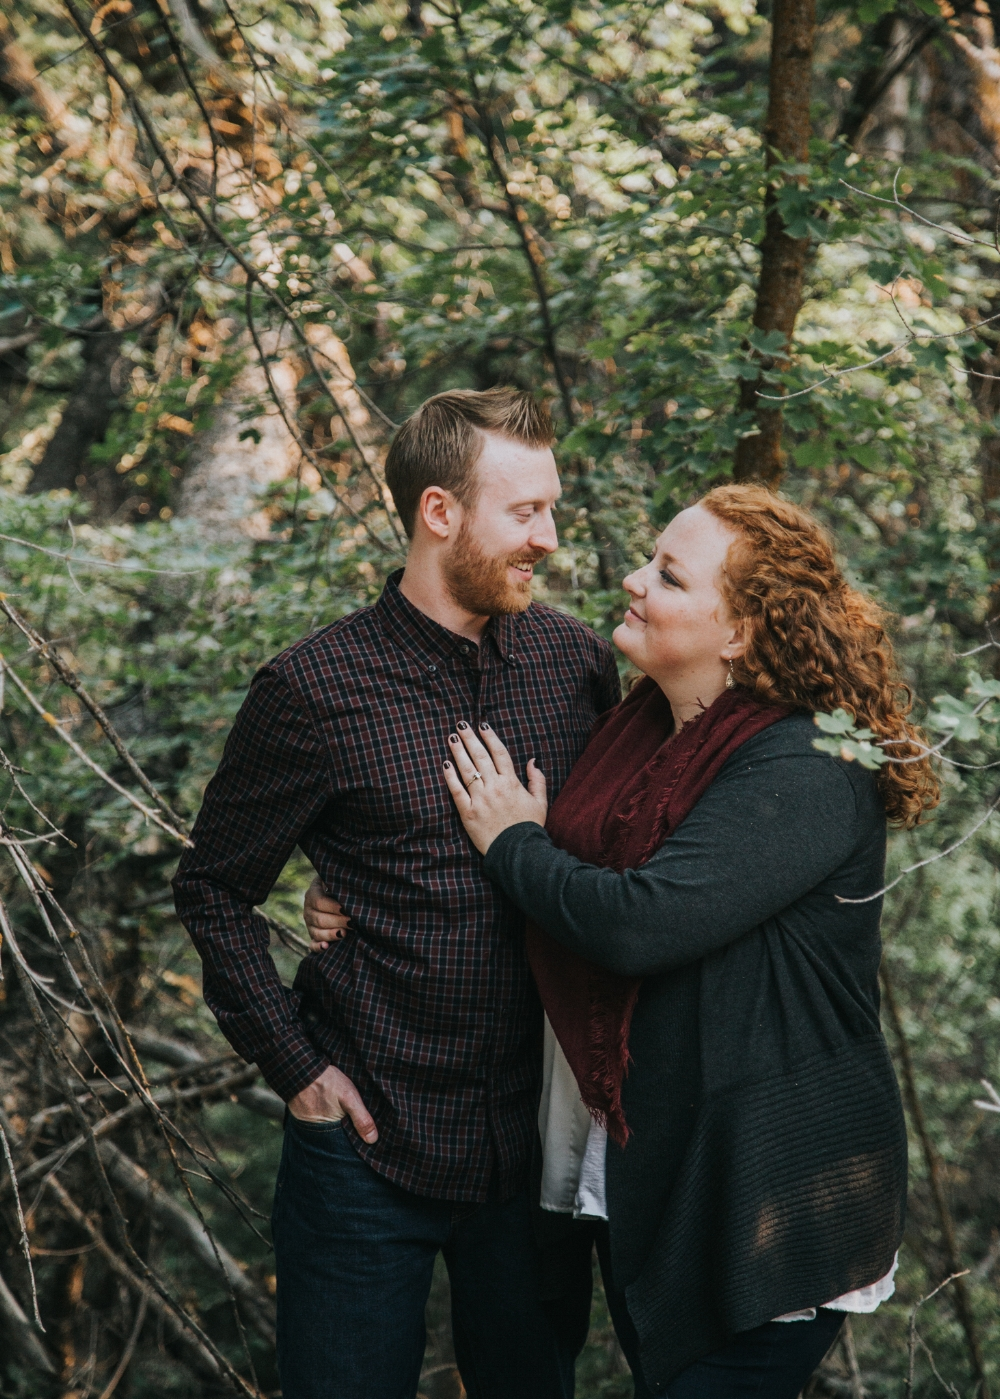 Photography | Couple | Lifestyle Photography | Couple photography | Utah photographer | Engagement Session | Engagement Photography Poses | Dellany Elizabeth